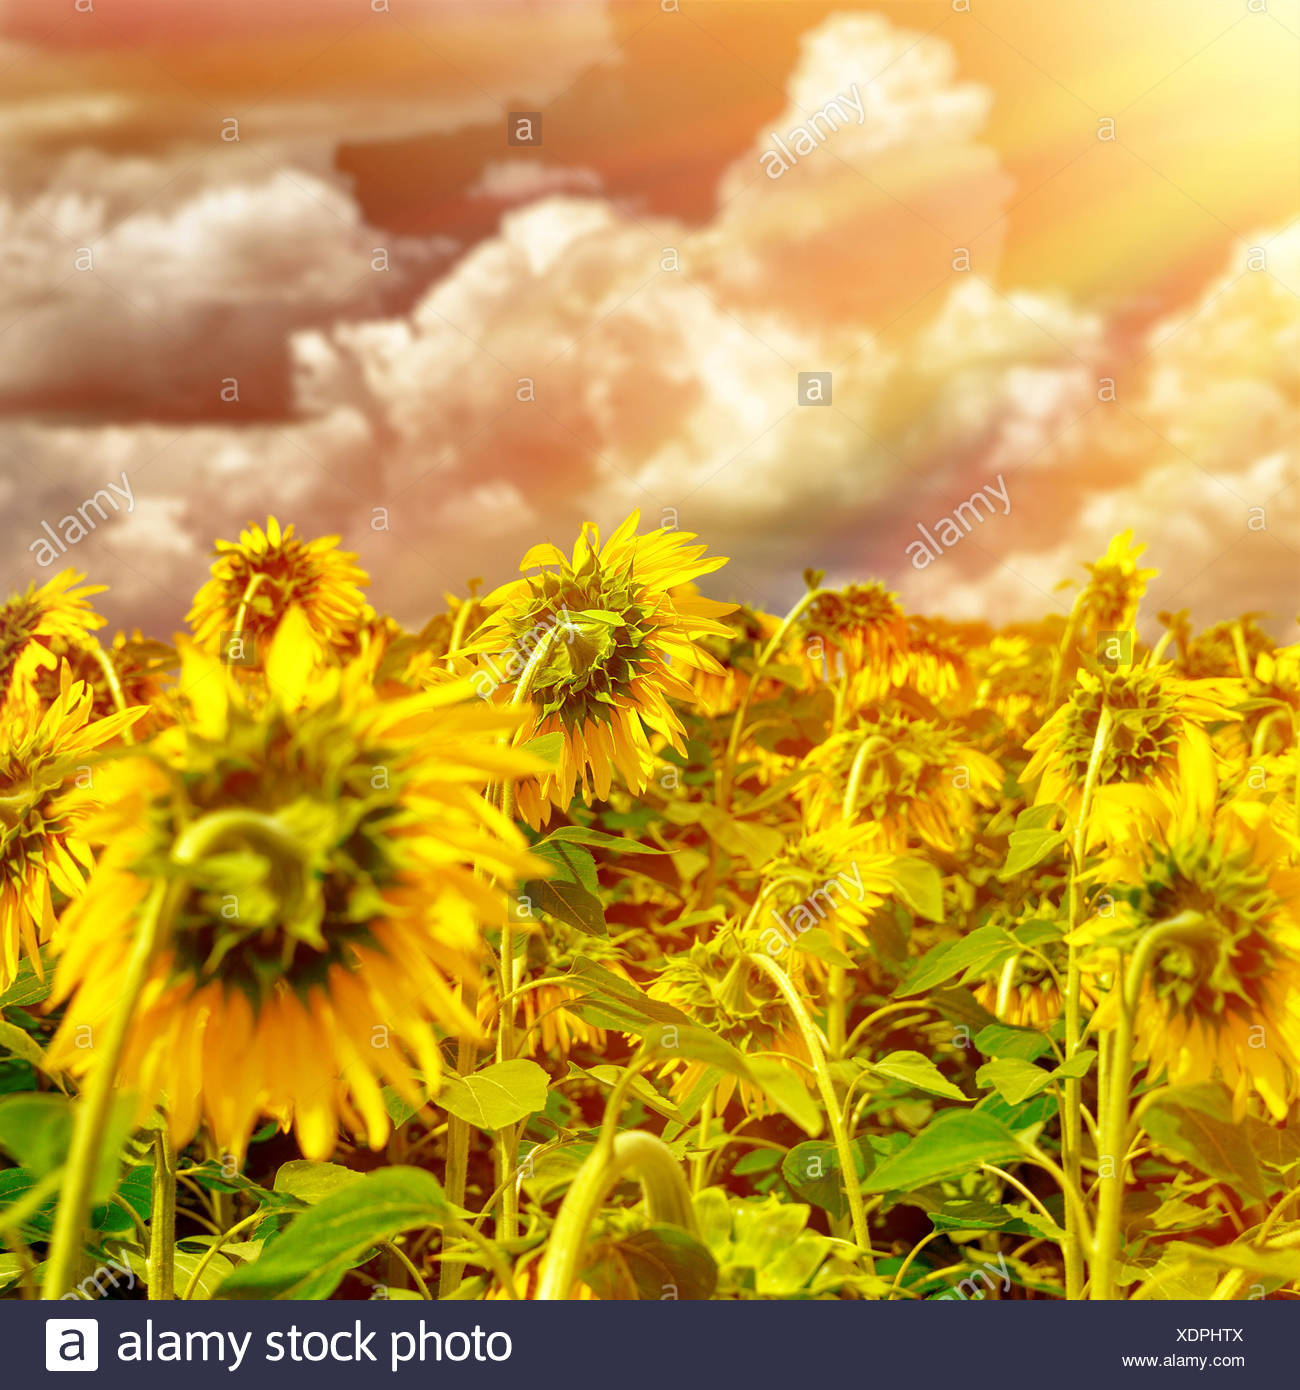 Blooming Big Beautiful Sunflowers On Stock Photos Blooming Big